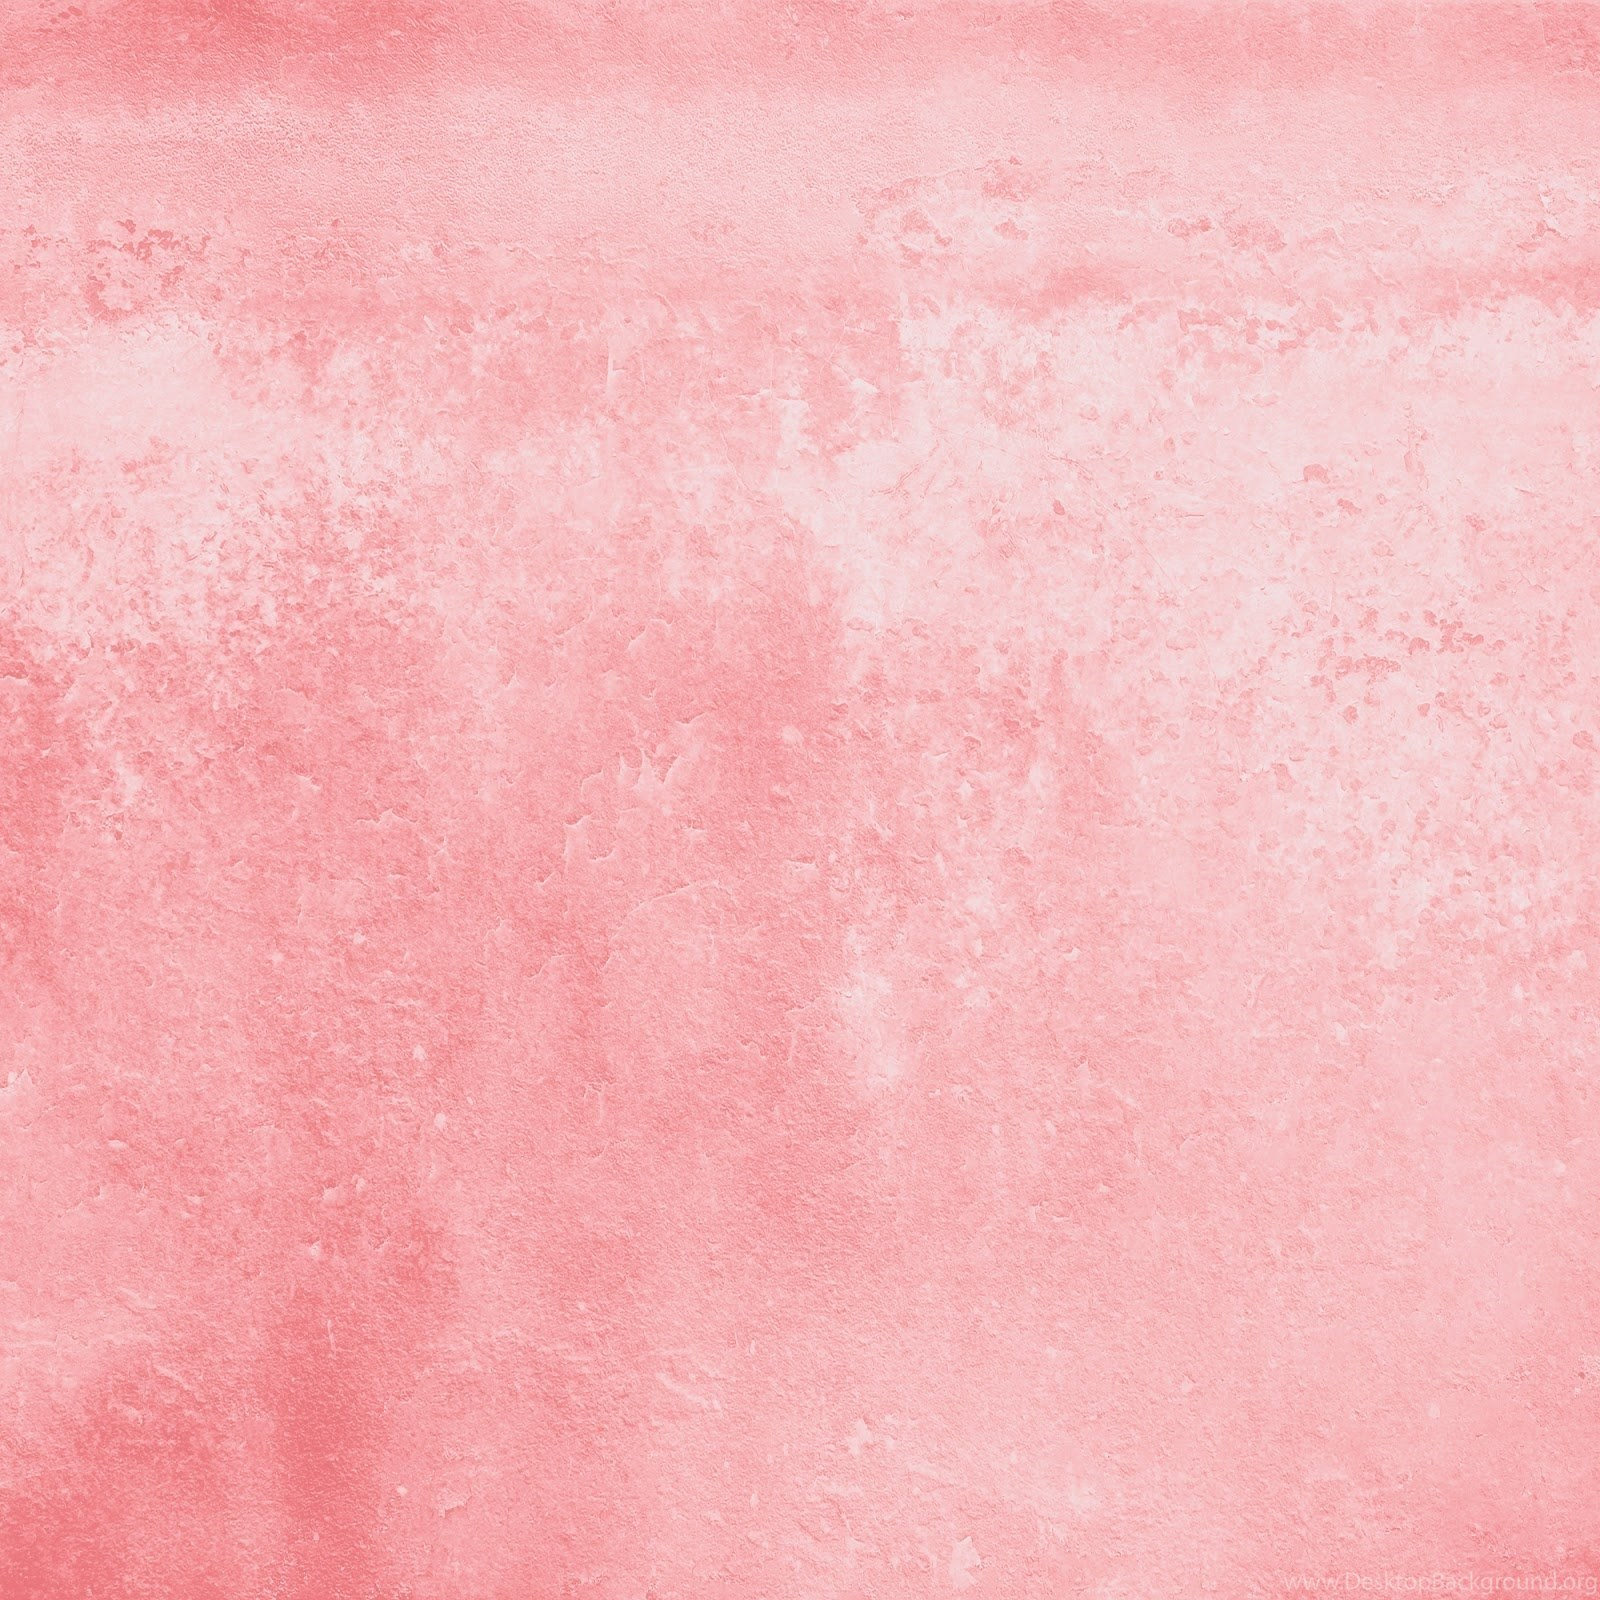 Pastel Pink Wallpapers HD Base